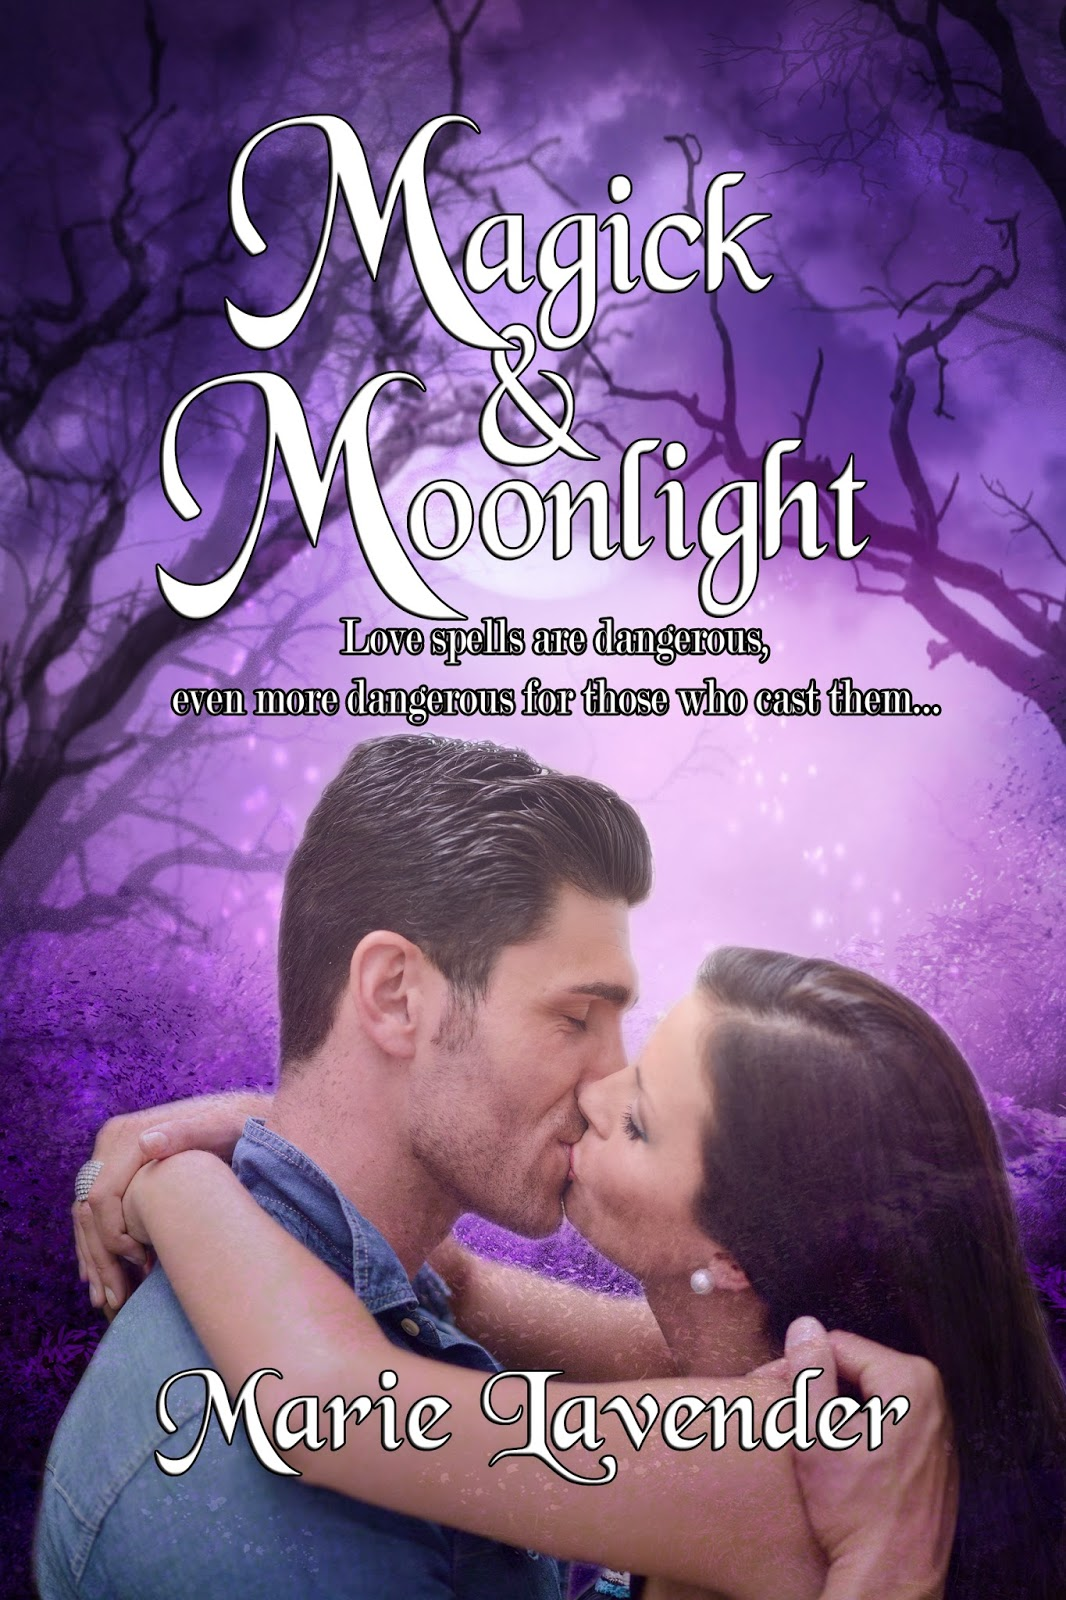 http://www.amazon.com/Magick-Moonlight-Marie-Lavender-ebook/dp/B00IRKN5P2/ref=cm_rdp_product